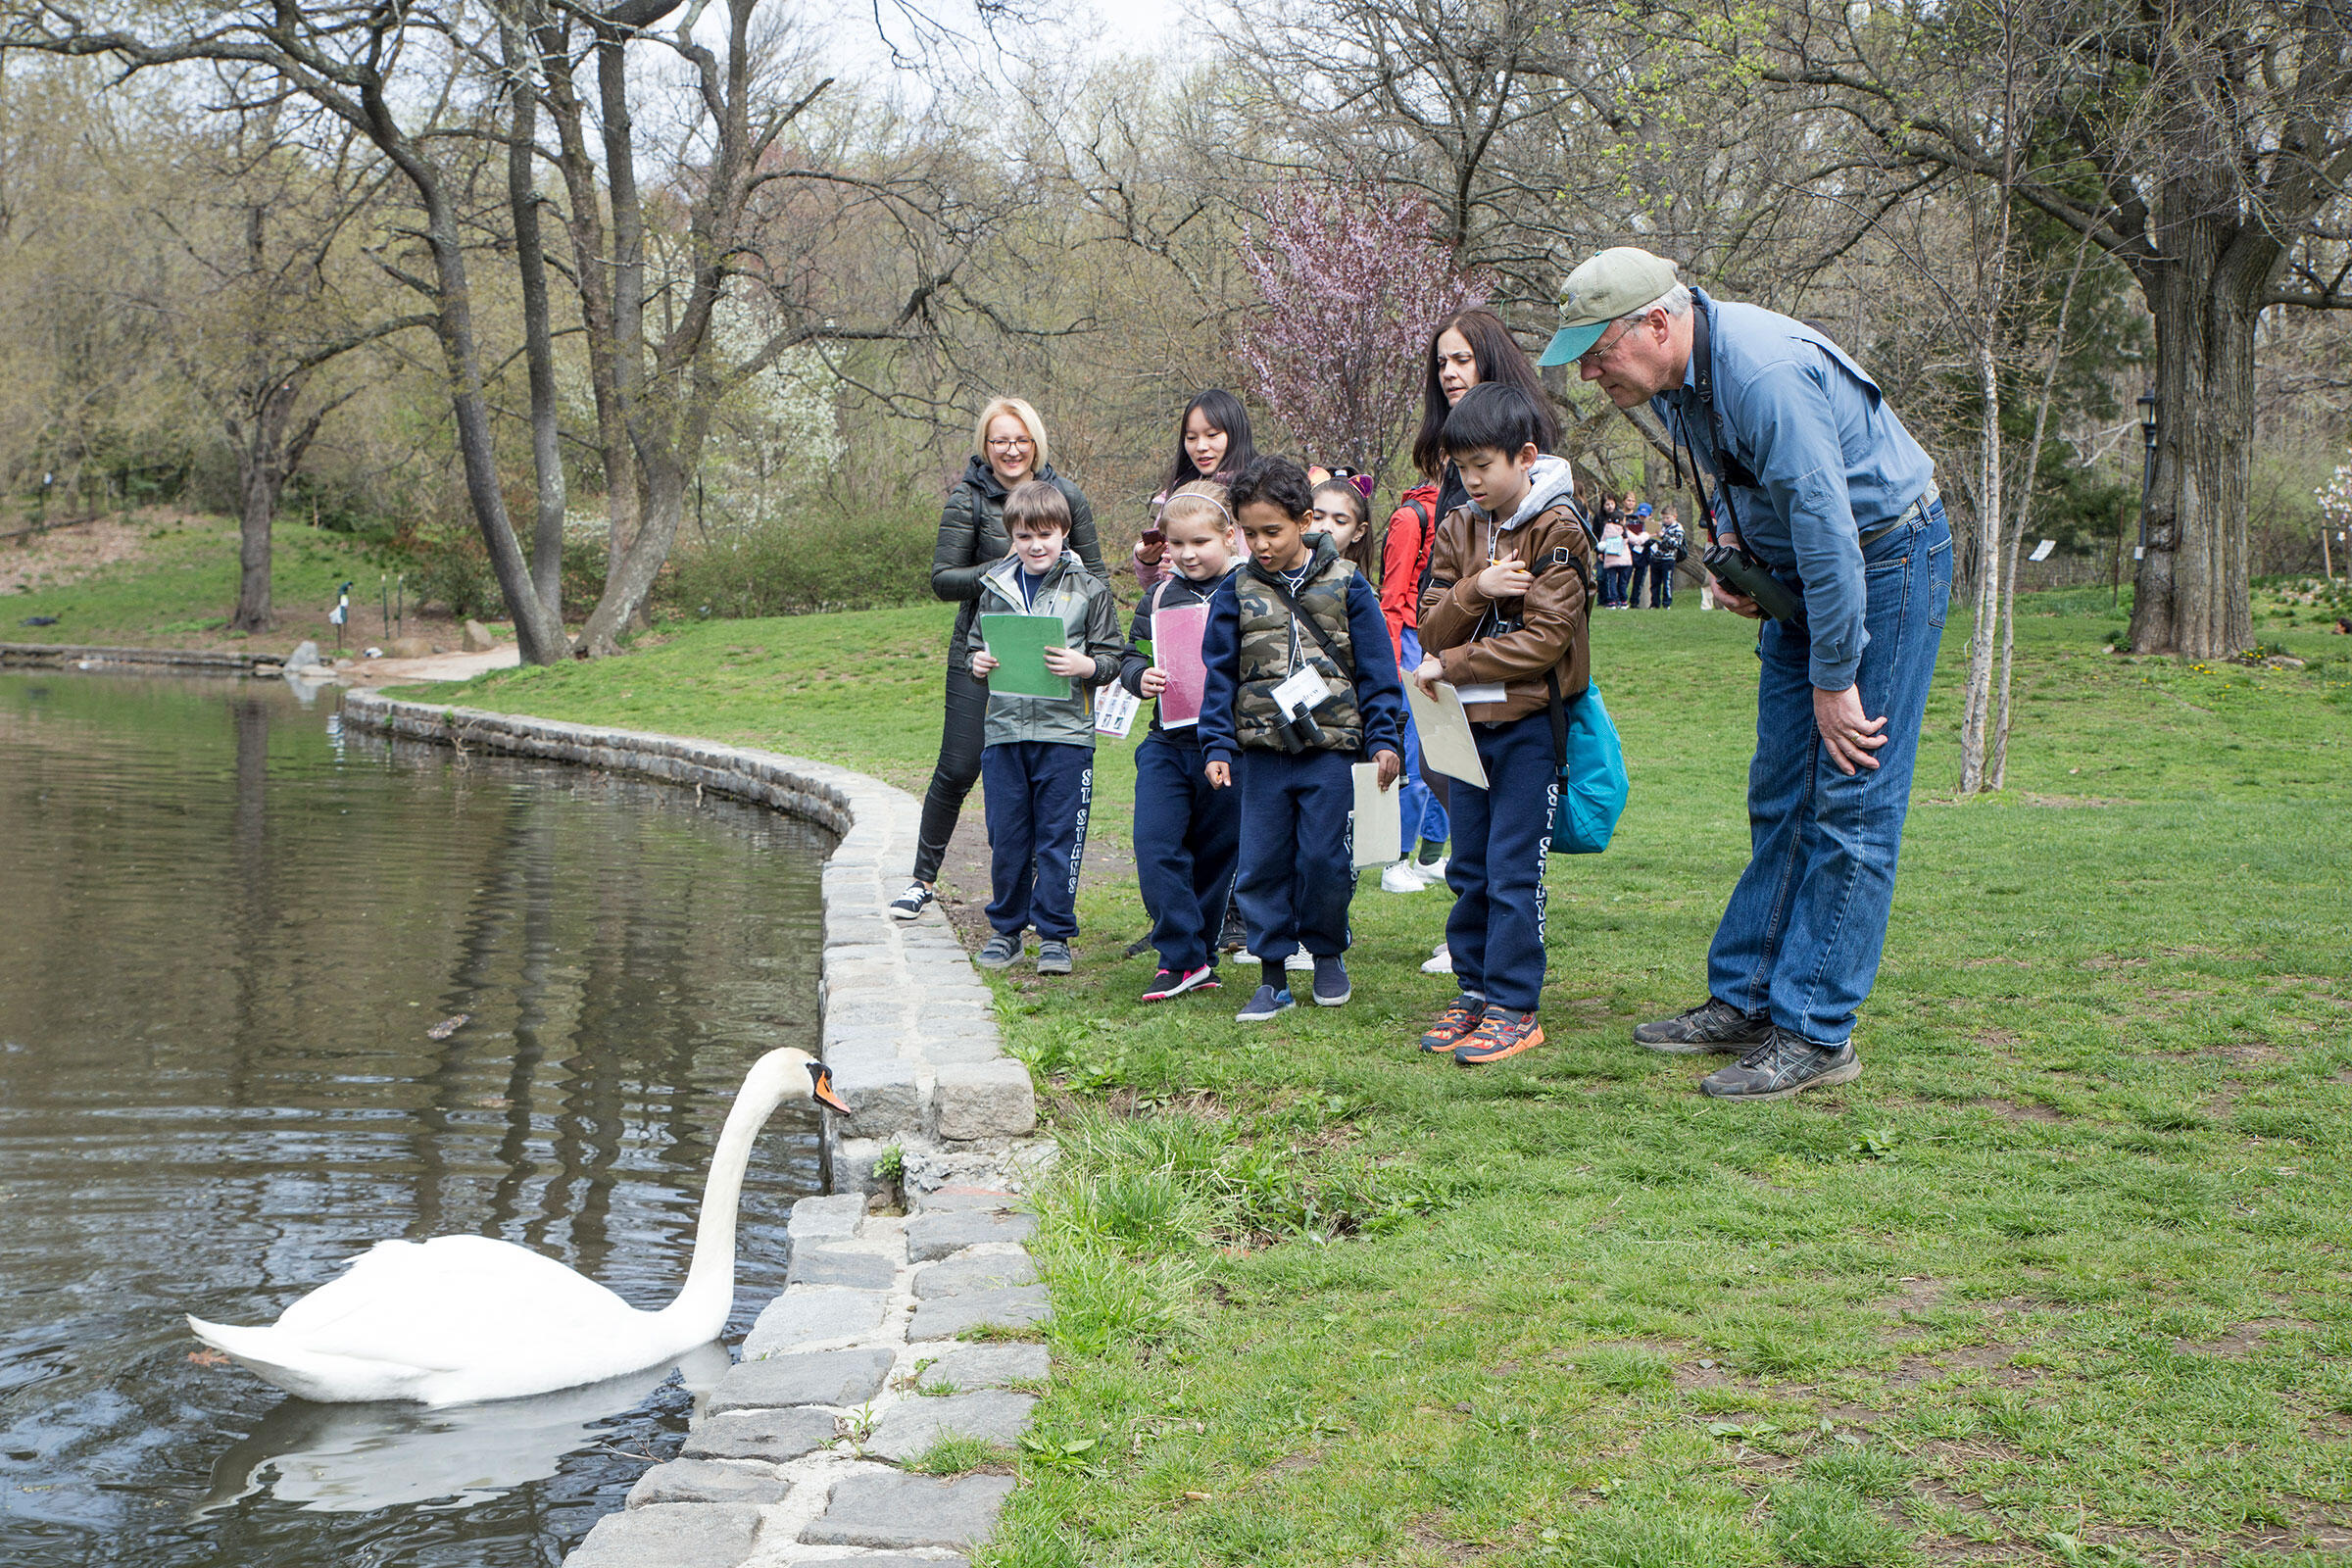 The second graders get a close look at a curious Mute Swan. Ambika Singh